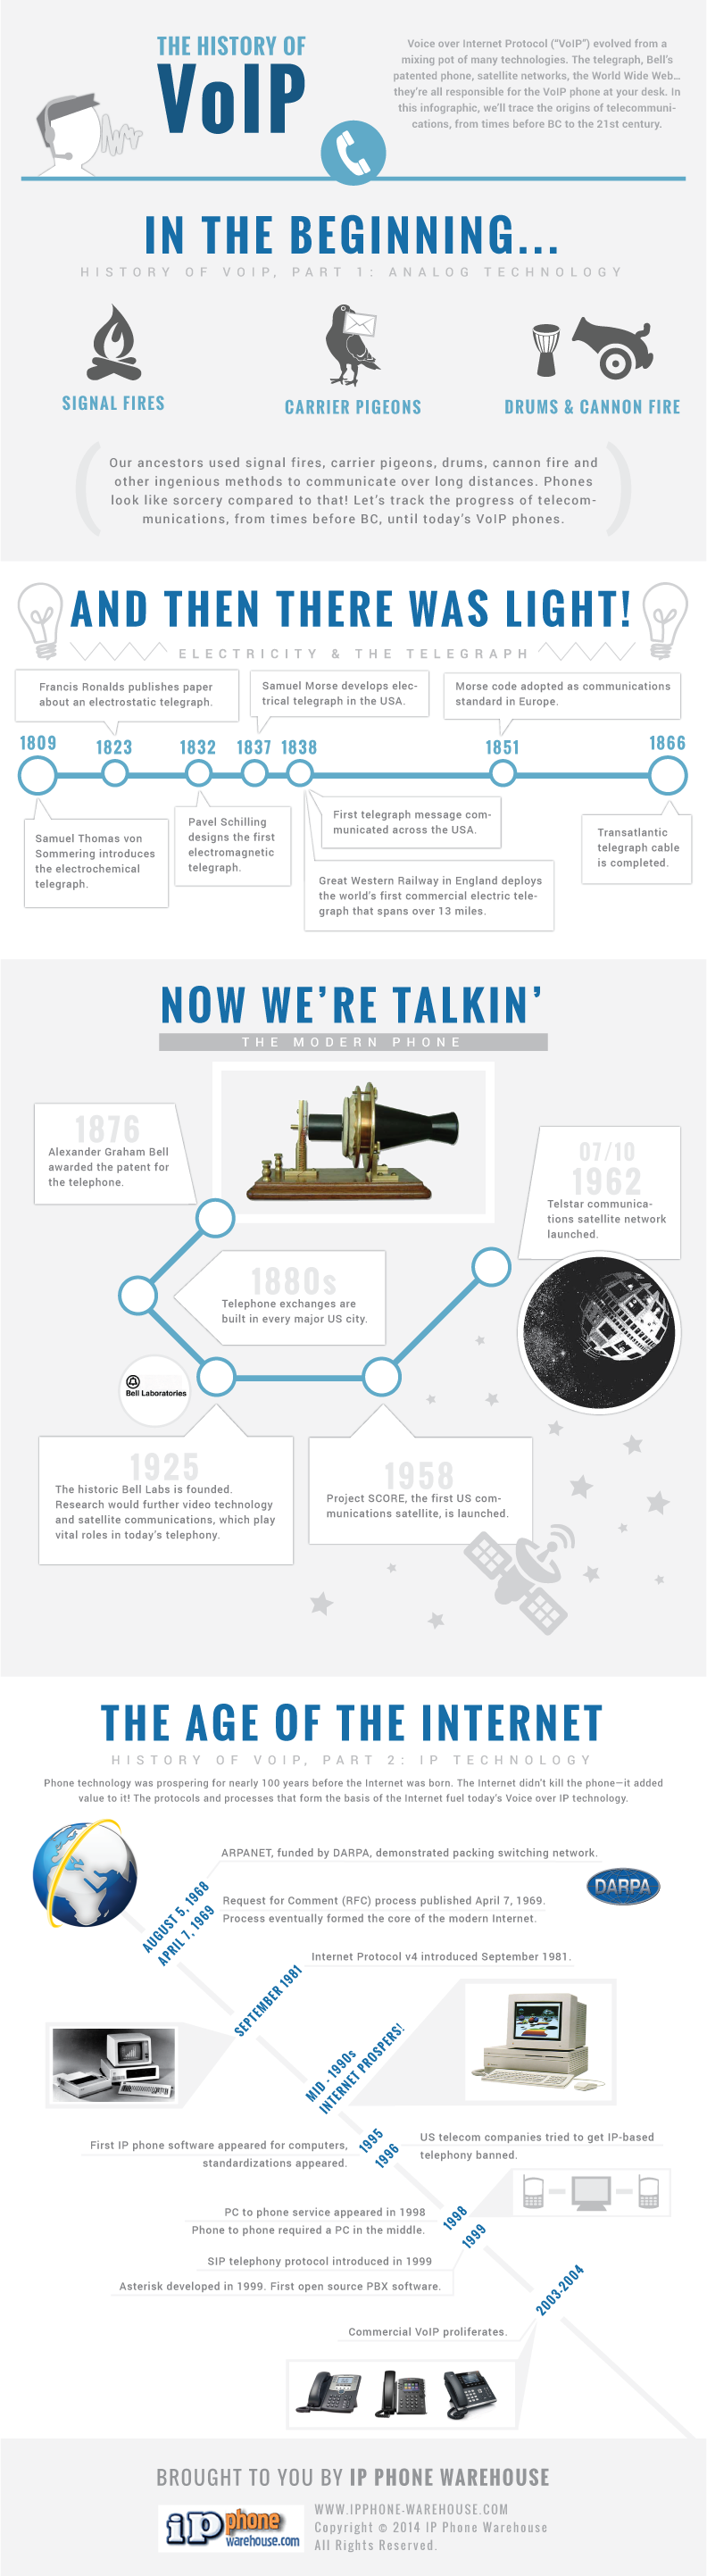 History of VoIP Infographic